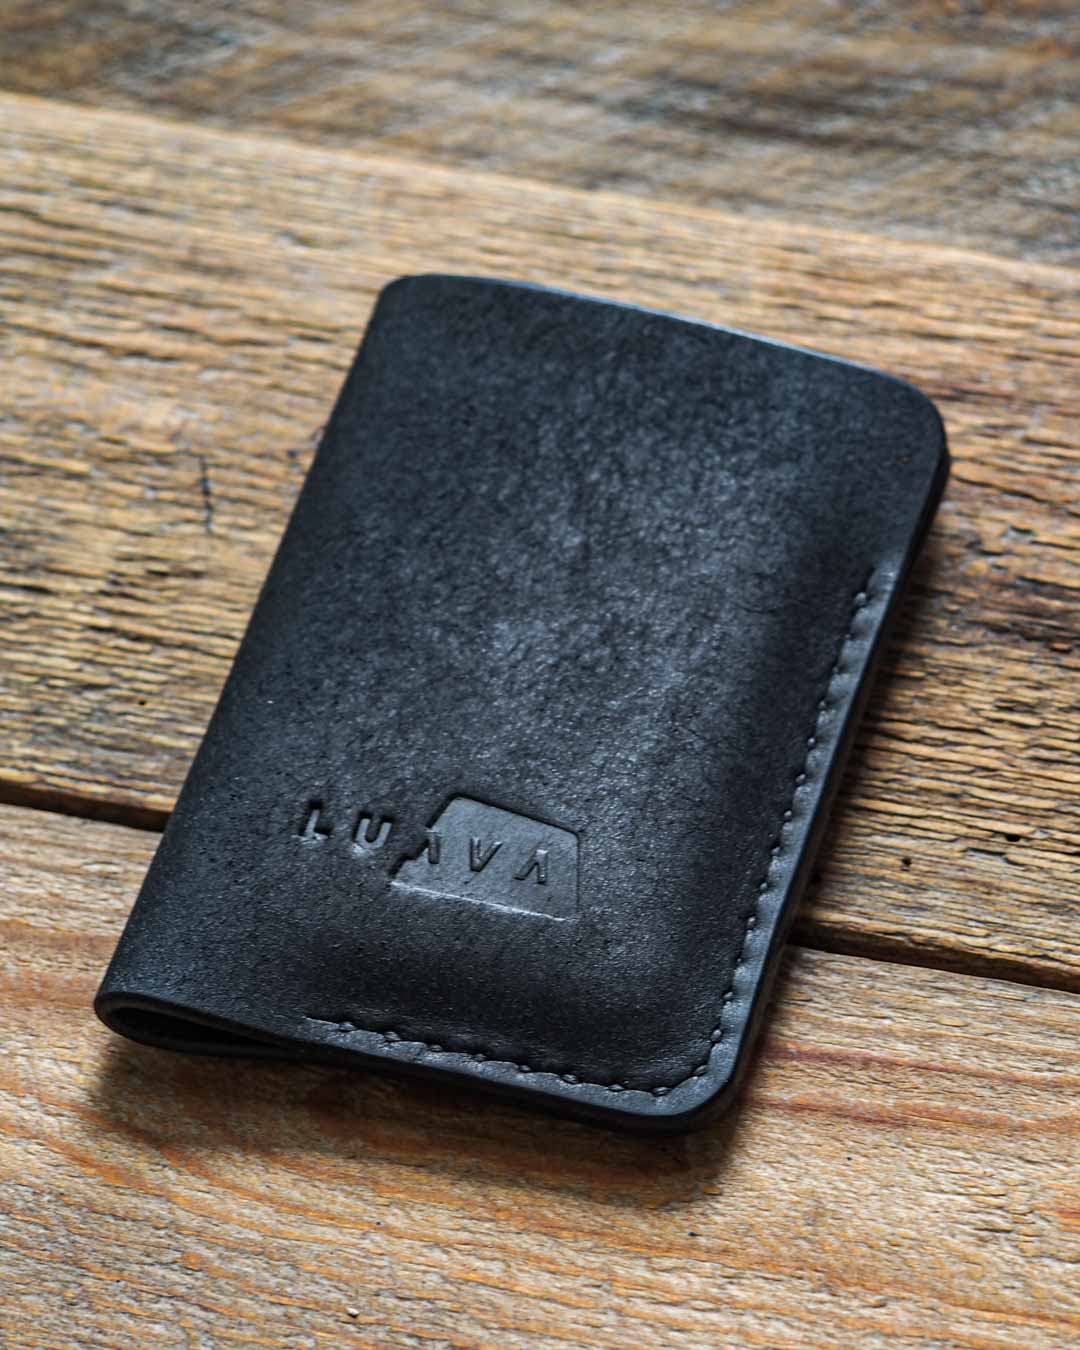 Luava leather card holder pueblo black wallet angle